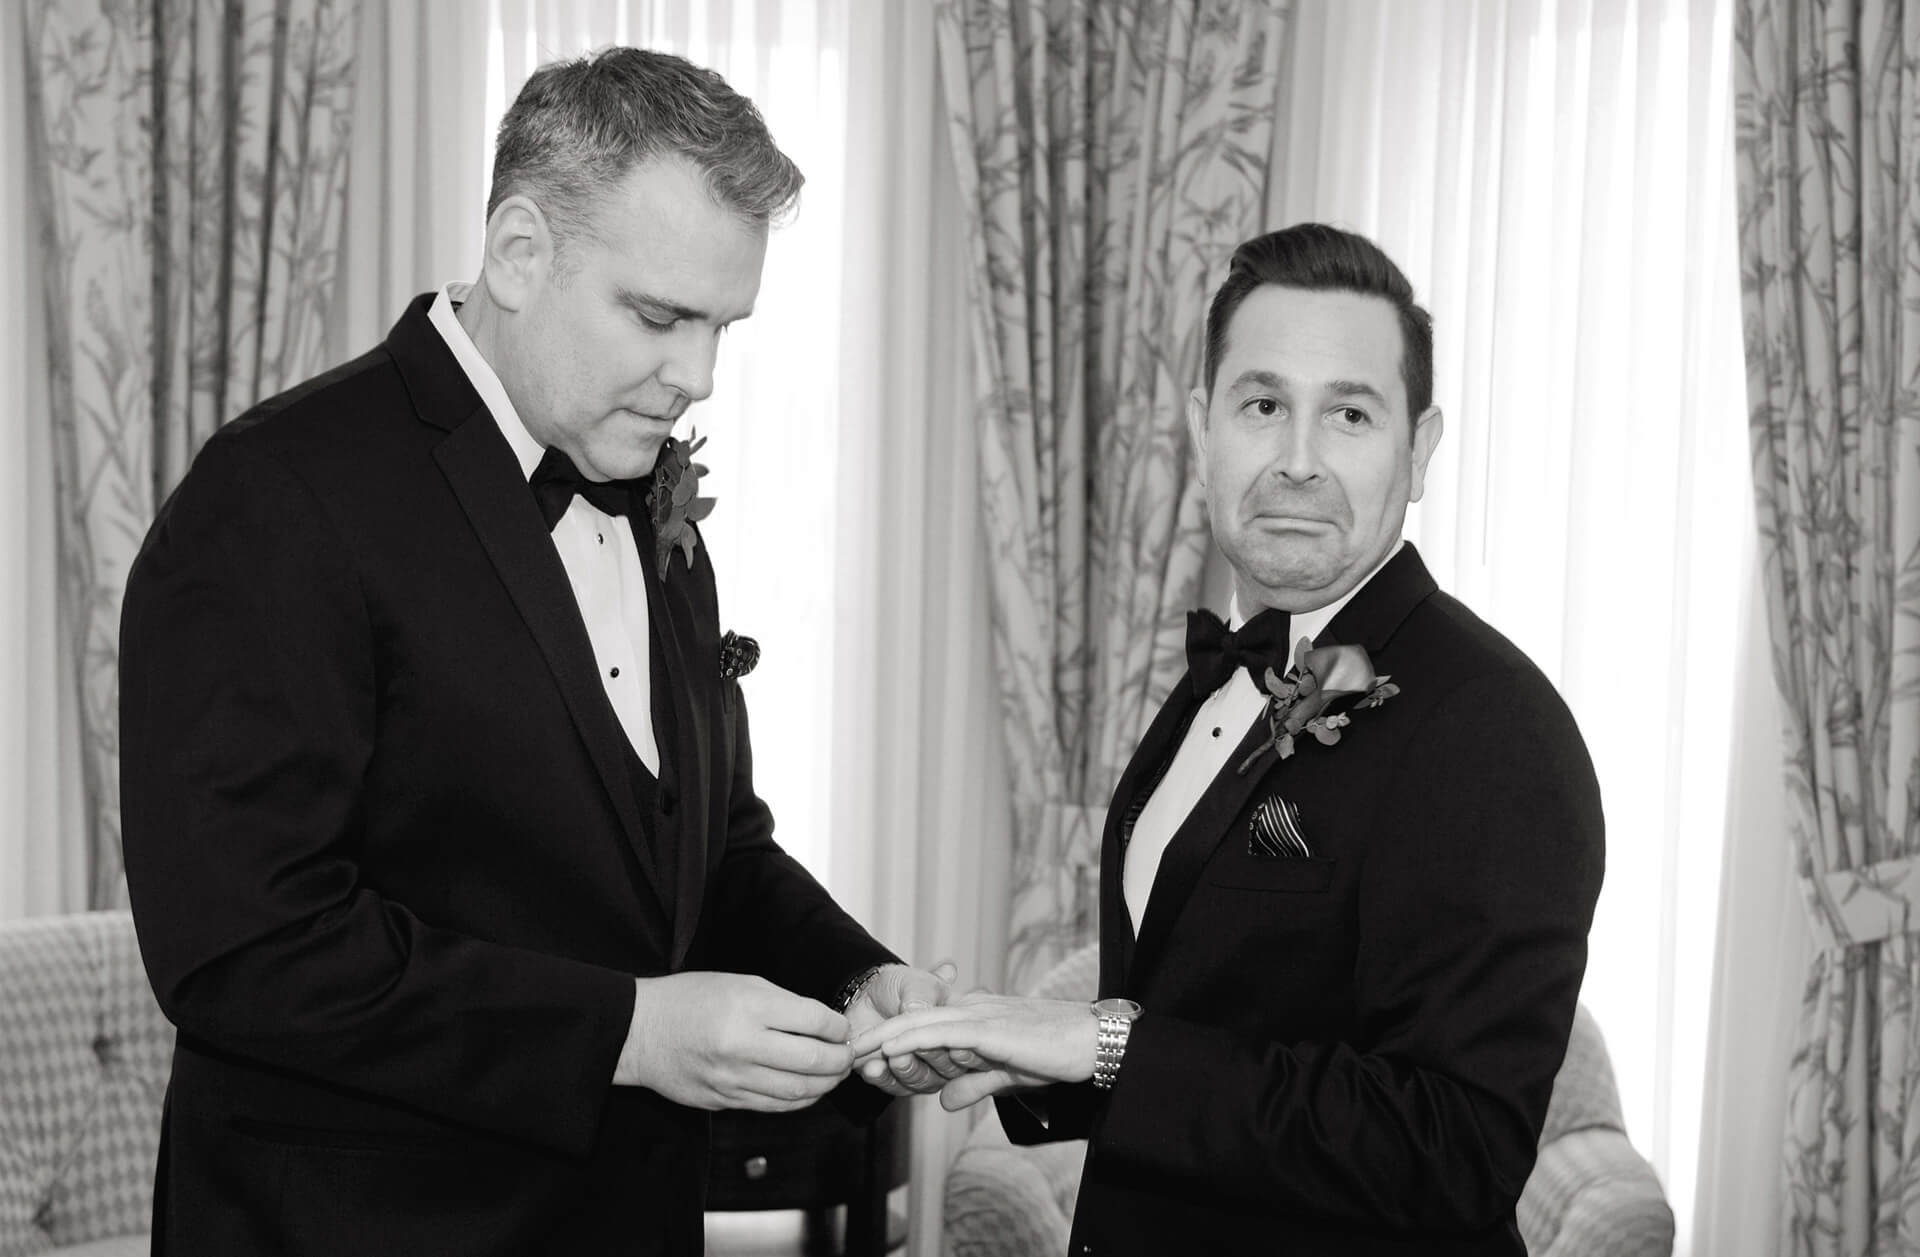 Wedding photojournalist Marci Curtis captures moments during her wedding photography like this groom's reaction as his husband practices placing the ring on his finger in Rochester, Michigan.